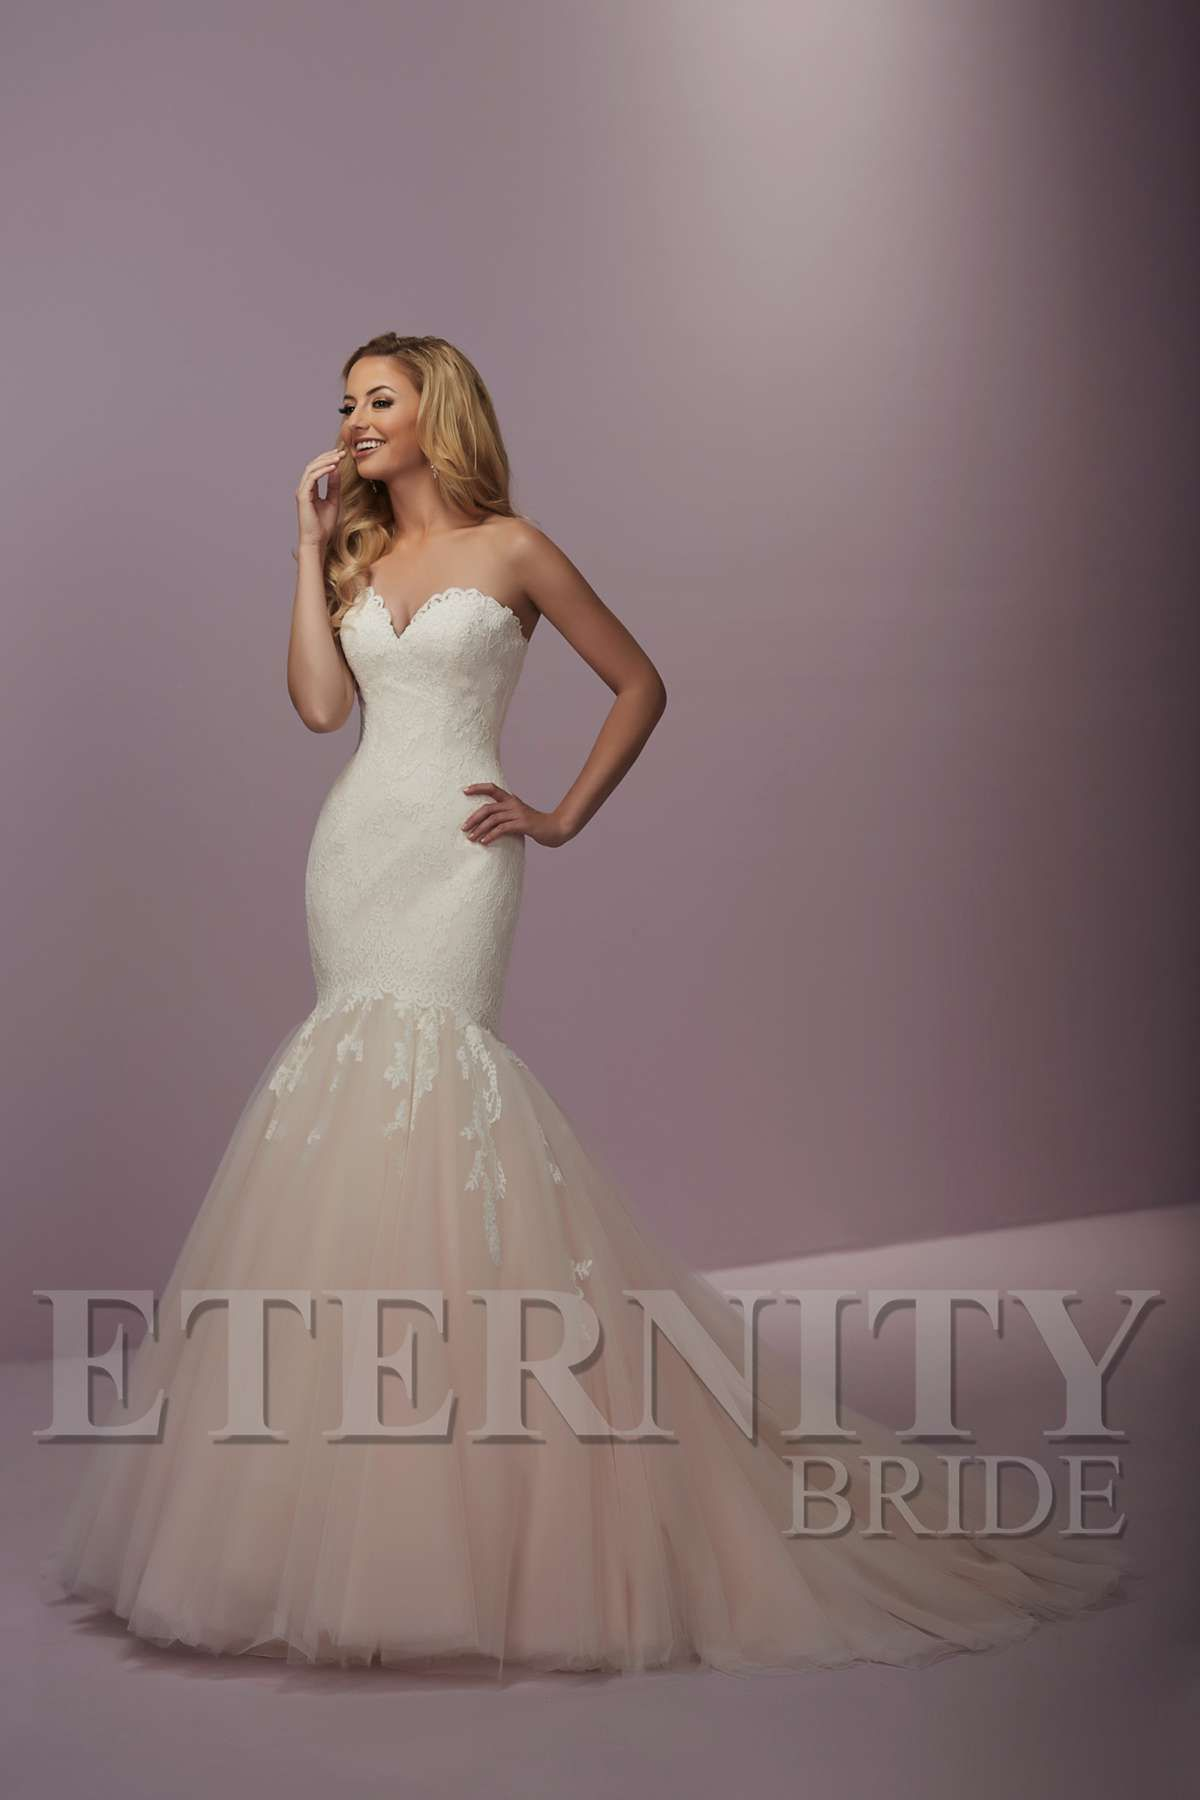 Style D5433 By Eternity Bride